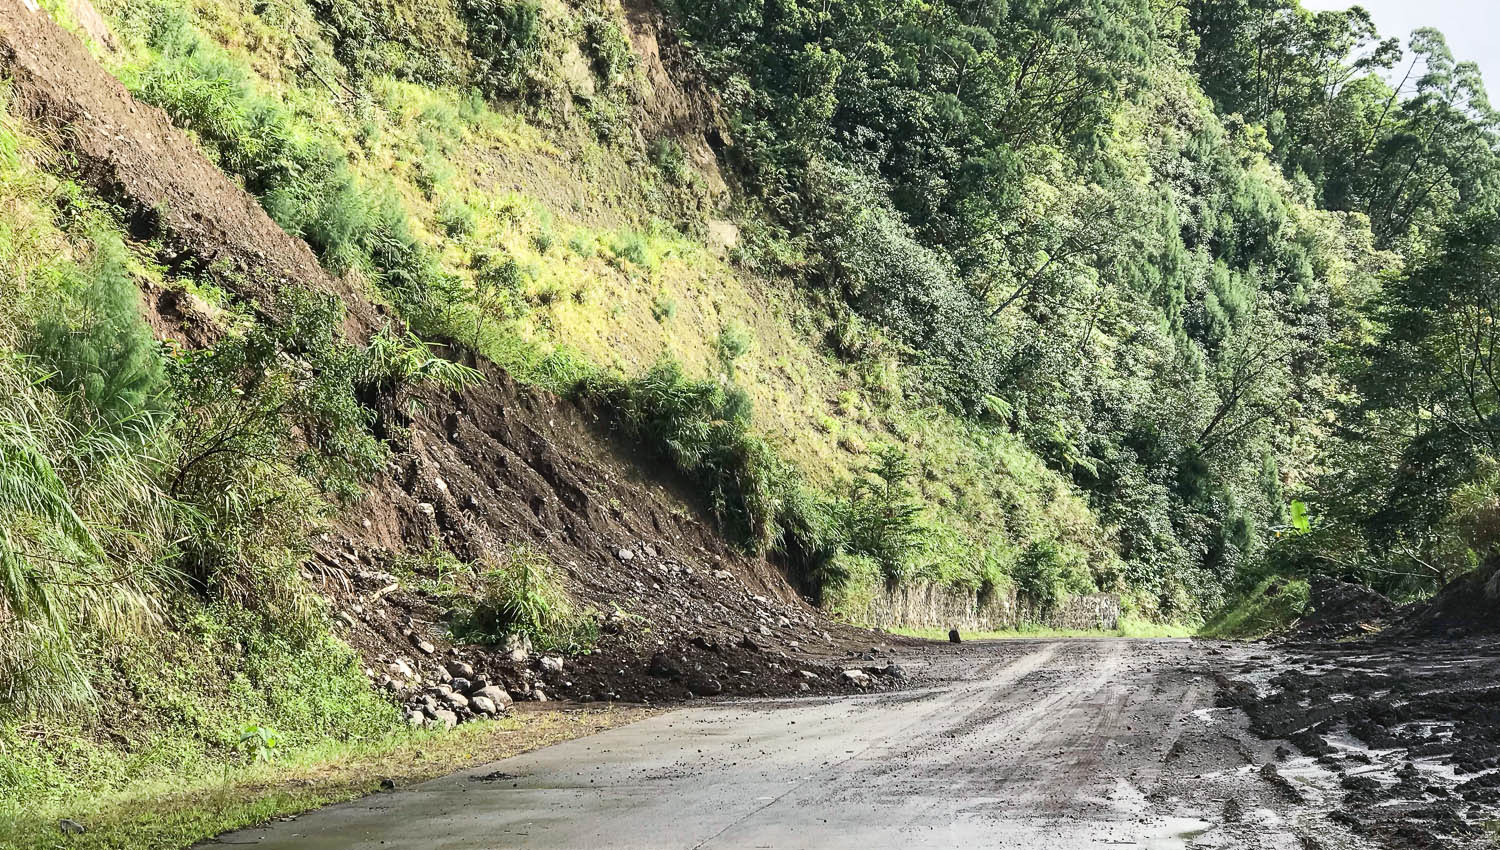 Landslides are common along all of the mountain roads. Image:  © David Astley